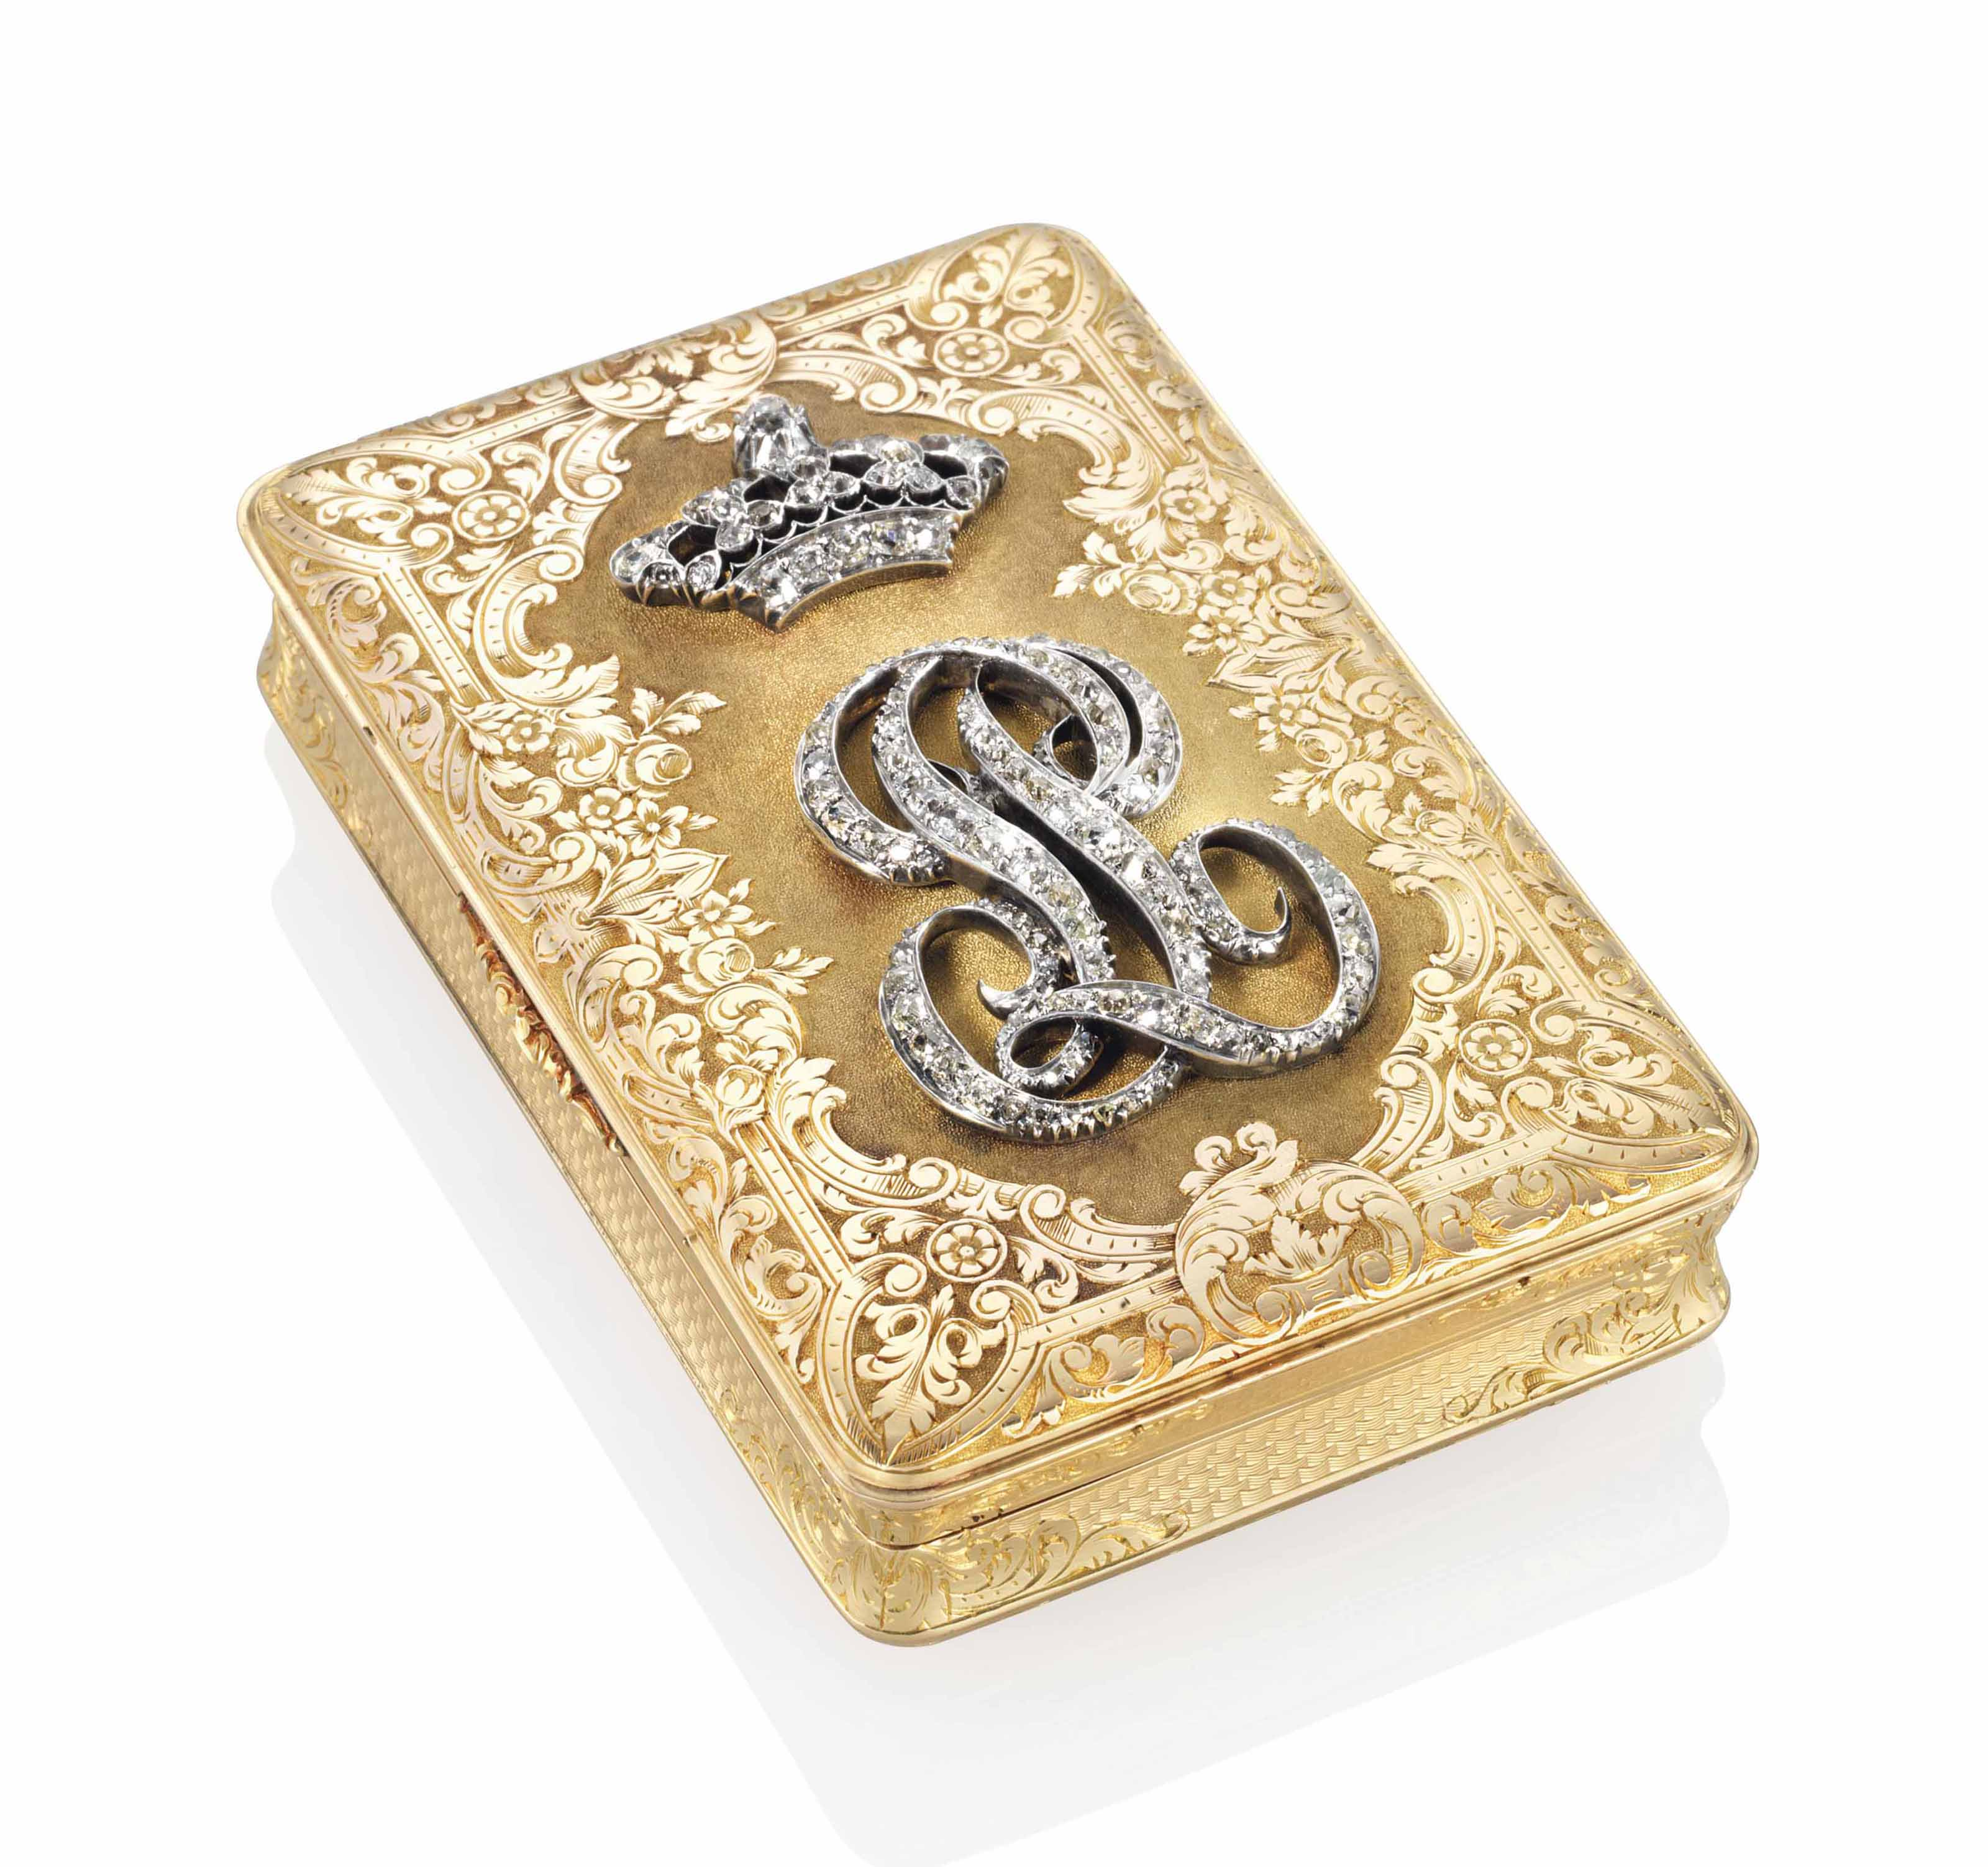 A LOUIS-PHILIPPE JEWELLED GOLD ROYAL PRESENTATION SNUFF-BOX